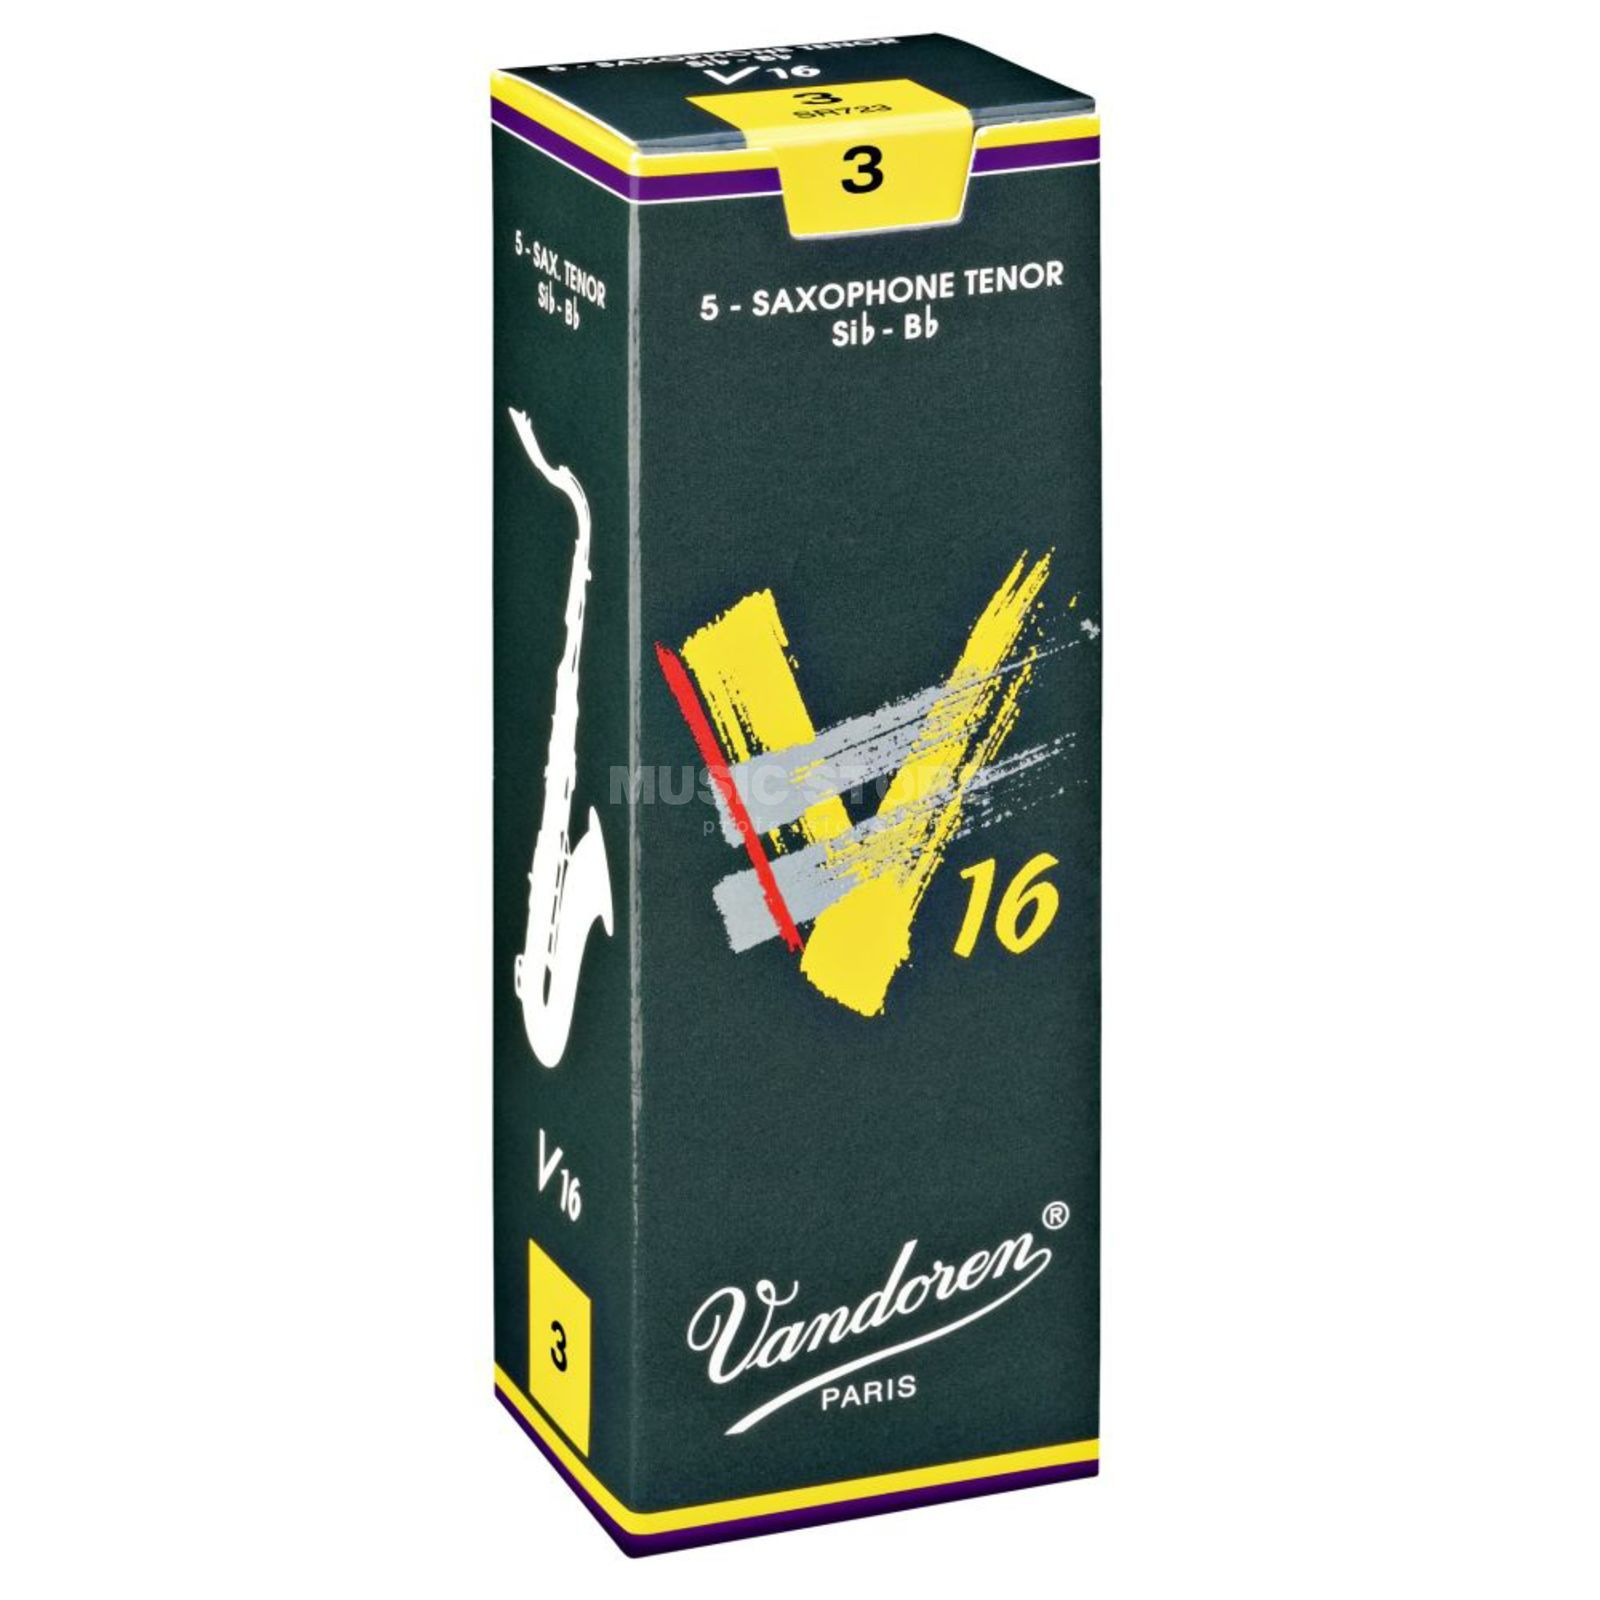 Vandoren V16 Tenor Sax Reeds 2.0 Box of 5 Product Image